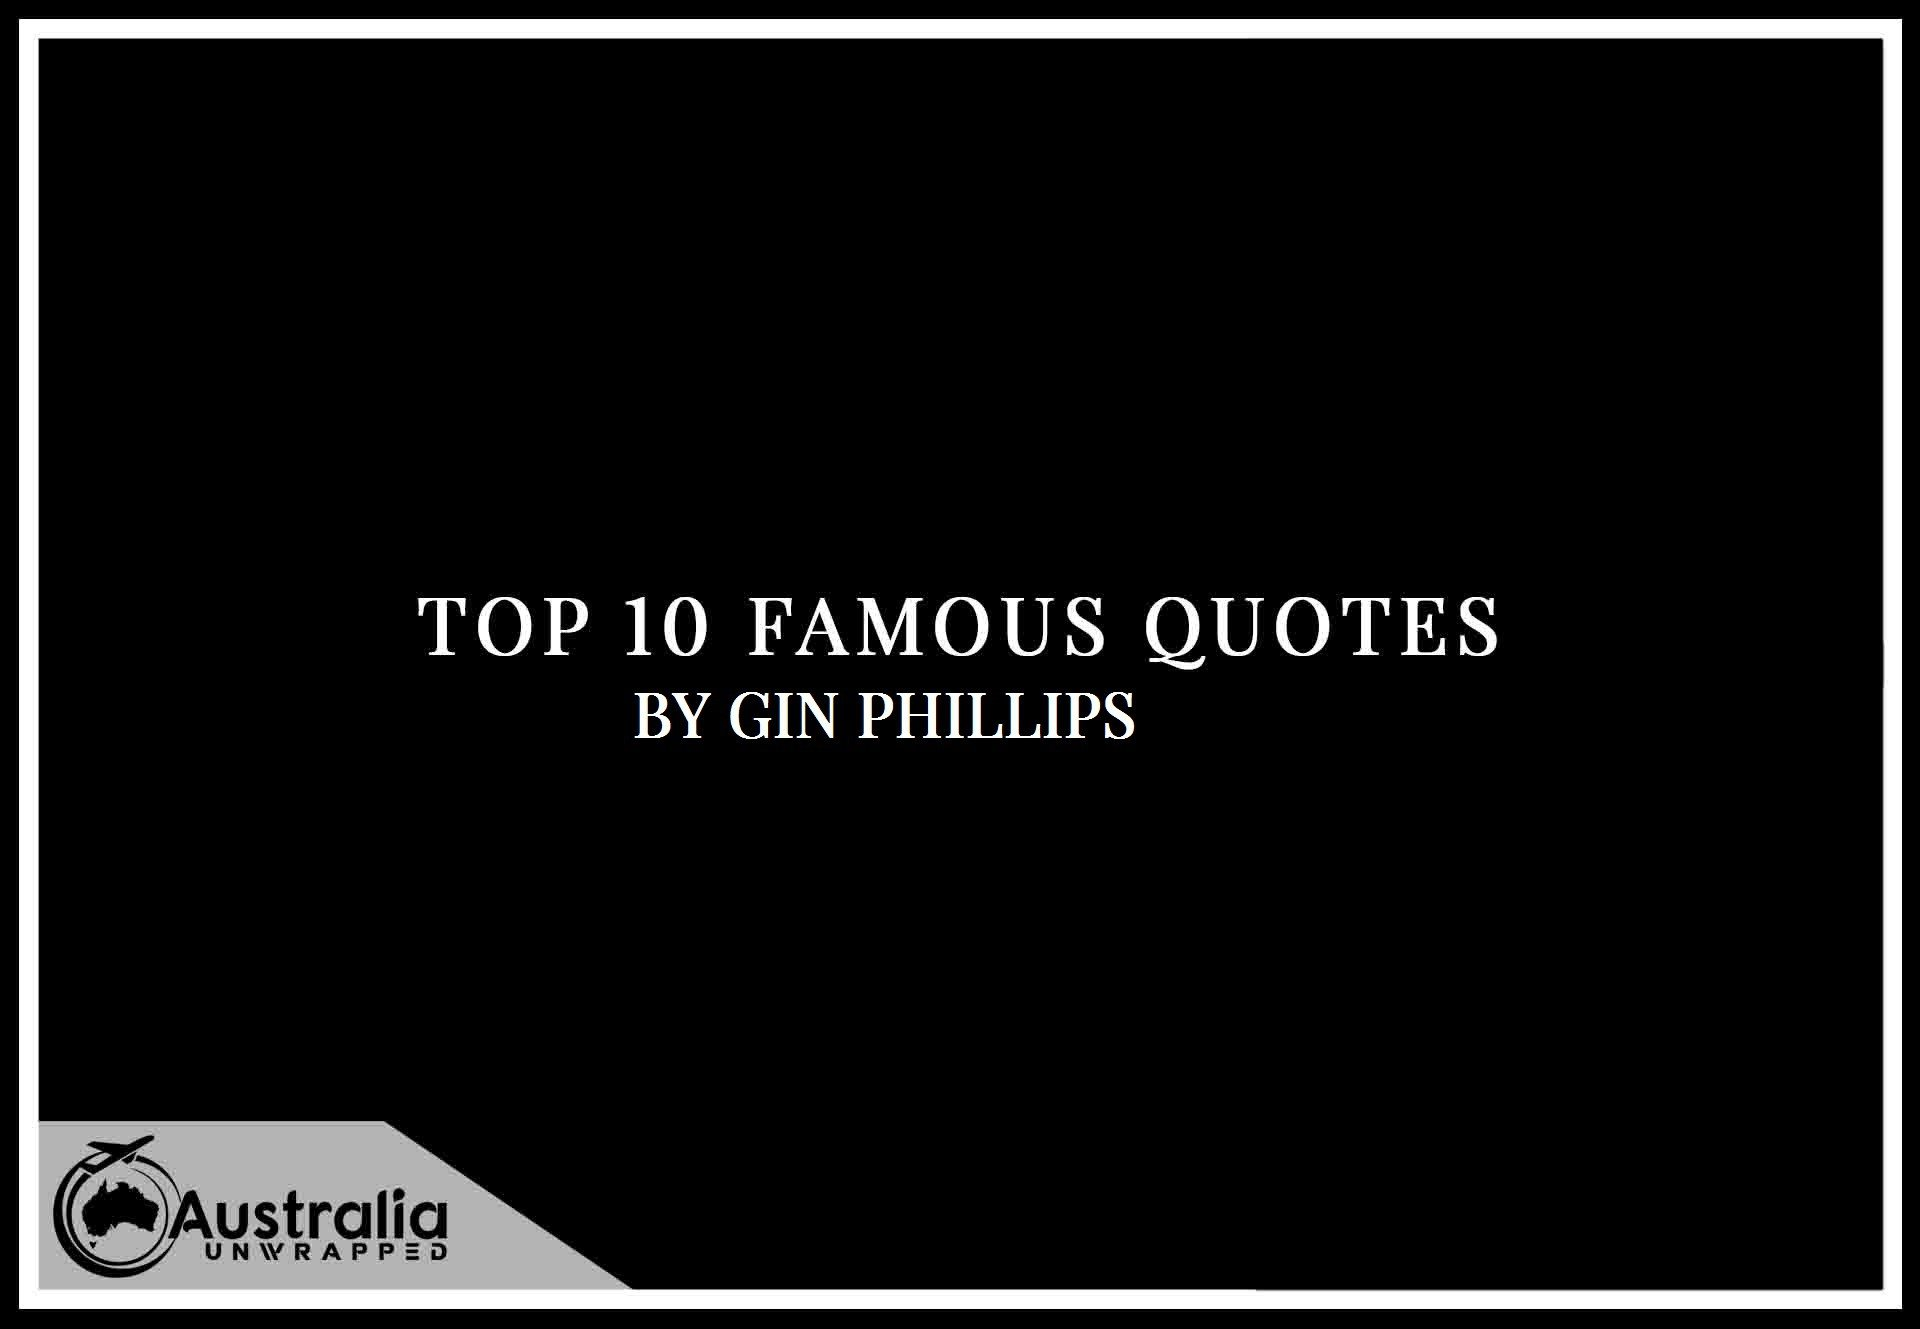 Gin Phillips's Top 10 Popular and Famous Quotes